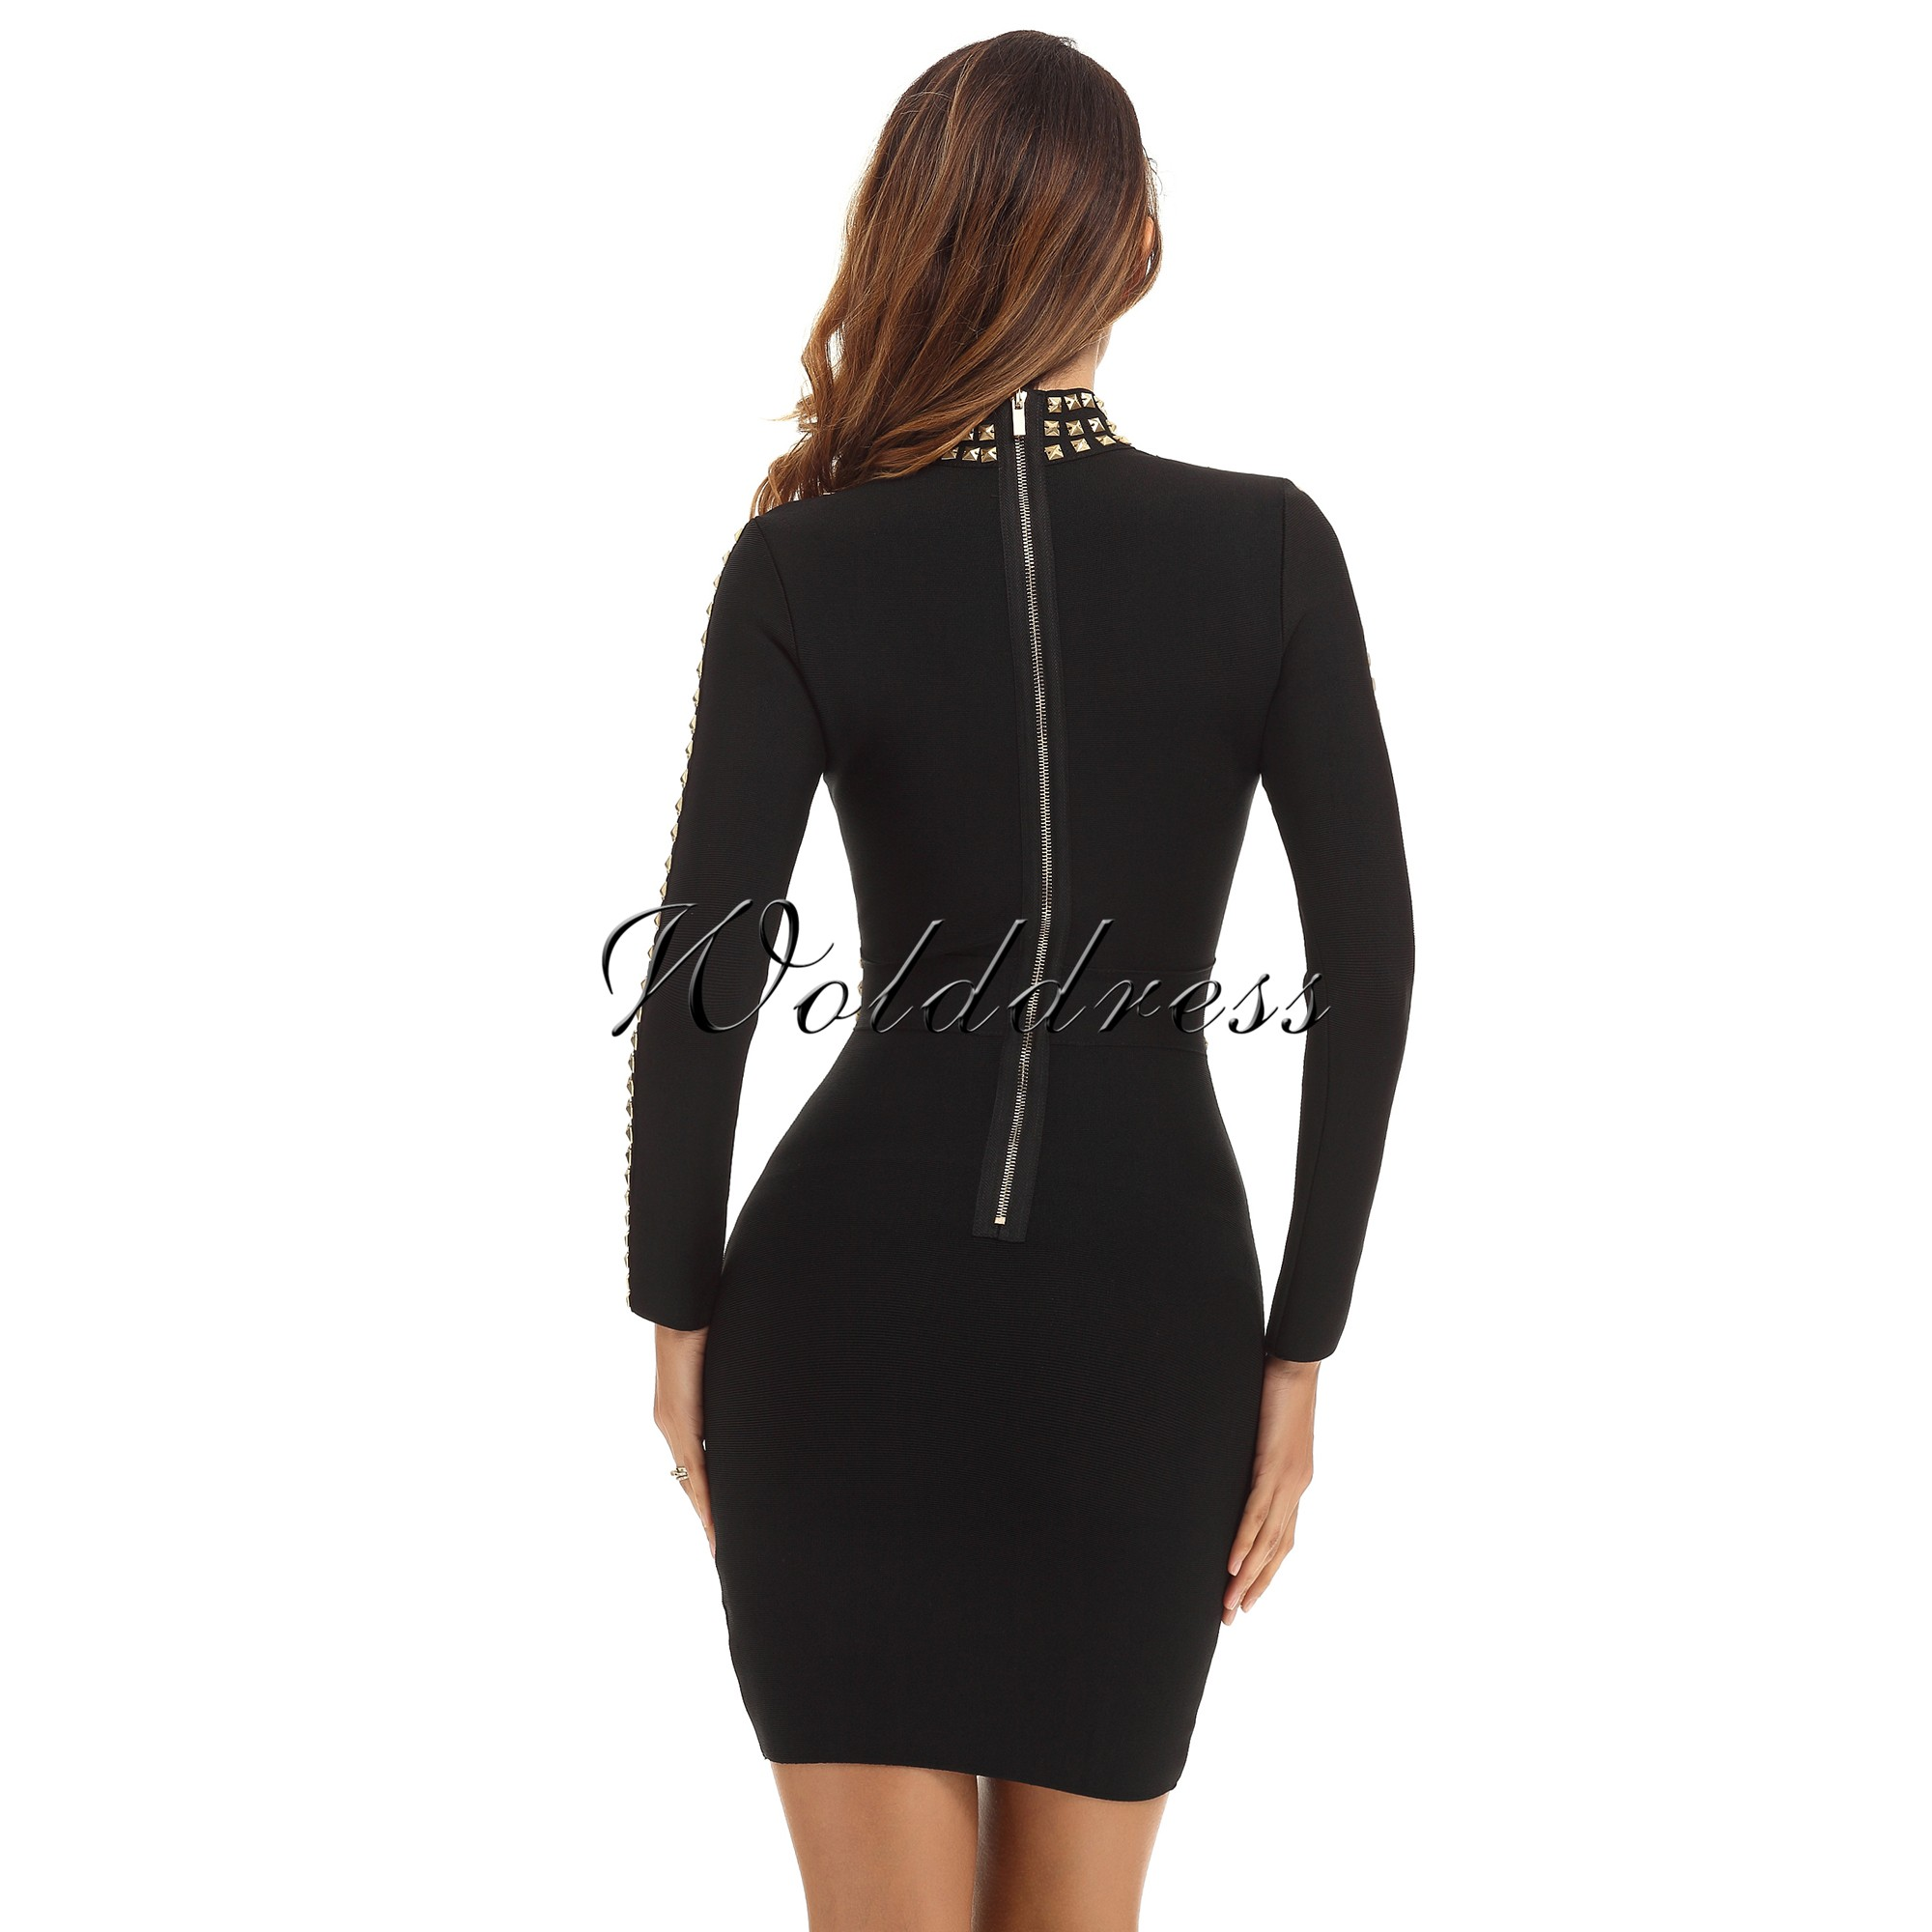 Rayon - Black Round Neck Longsleeve Mini Metal Studded Fashion Bandage Dress HJ381-Black